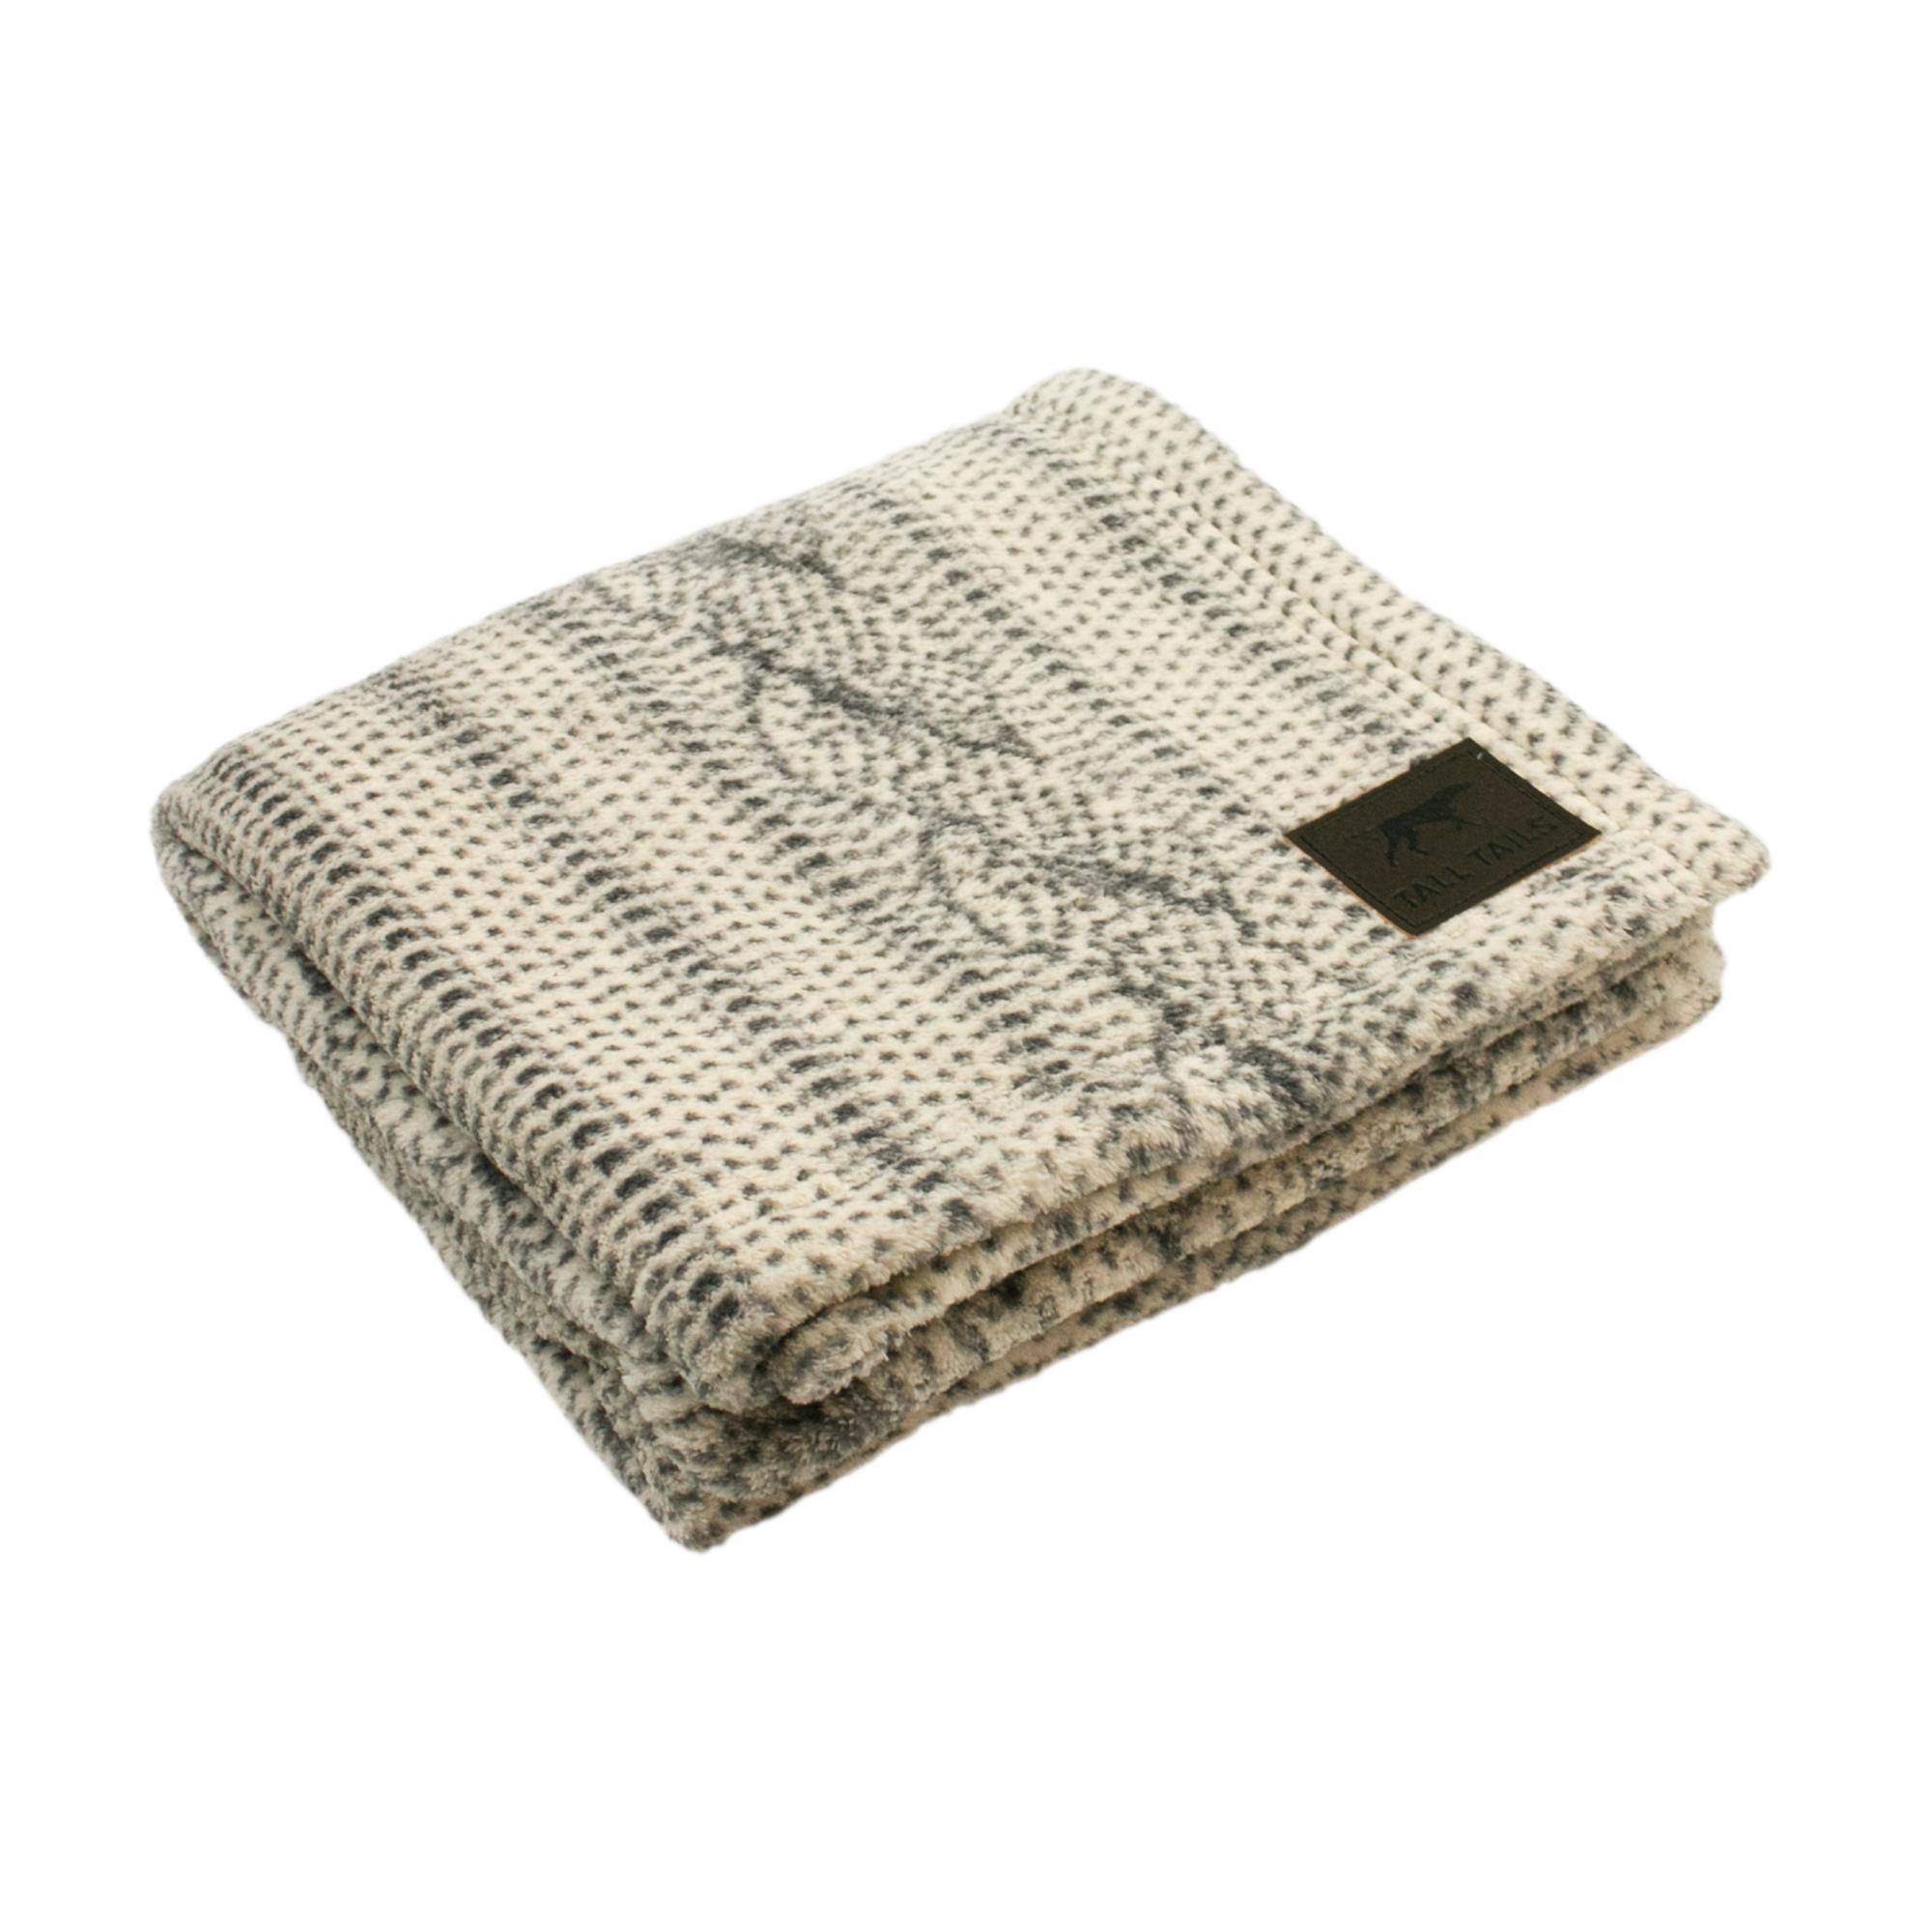 Tall Tails Cable Knit Print Dog Blanket, 30x40